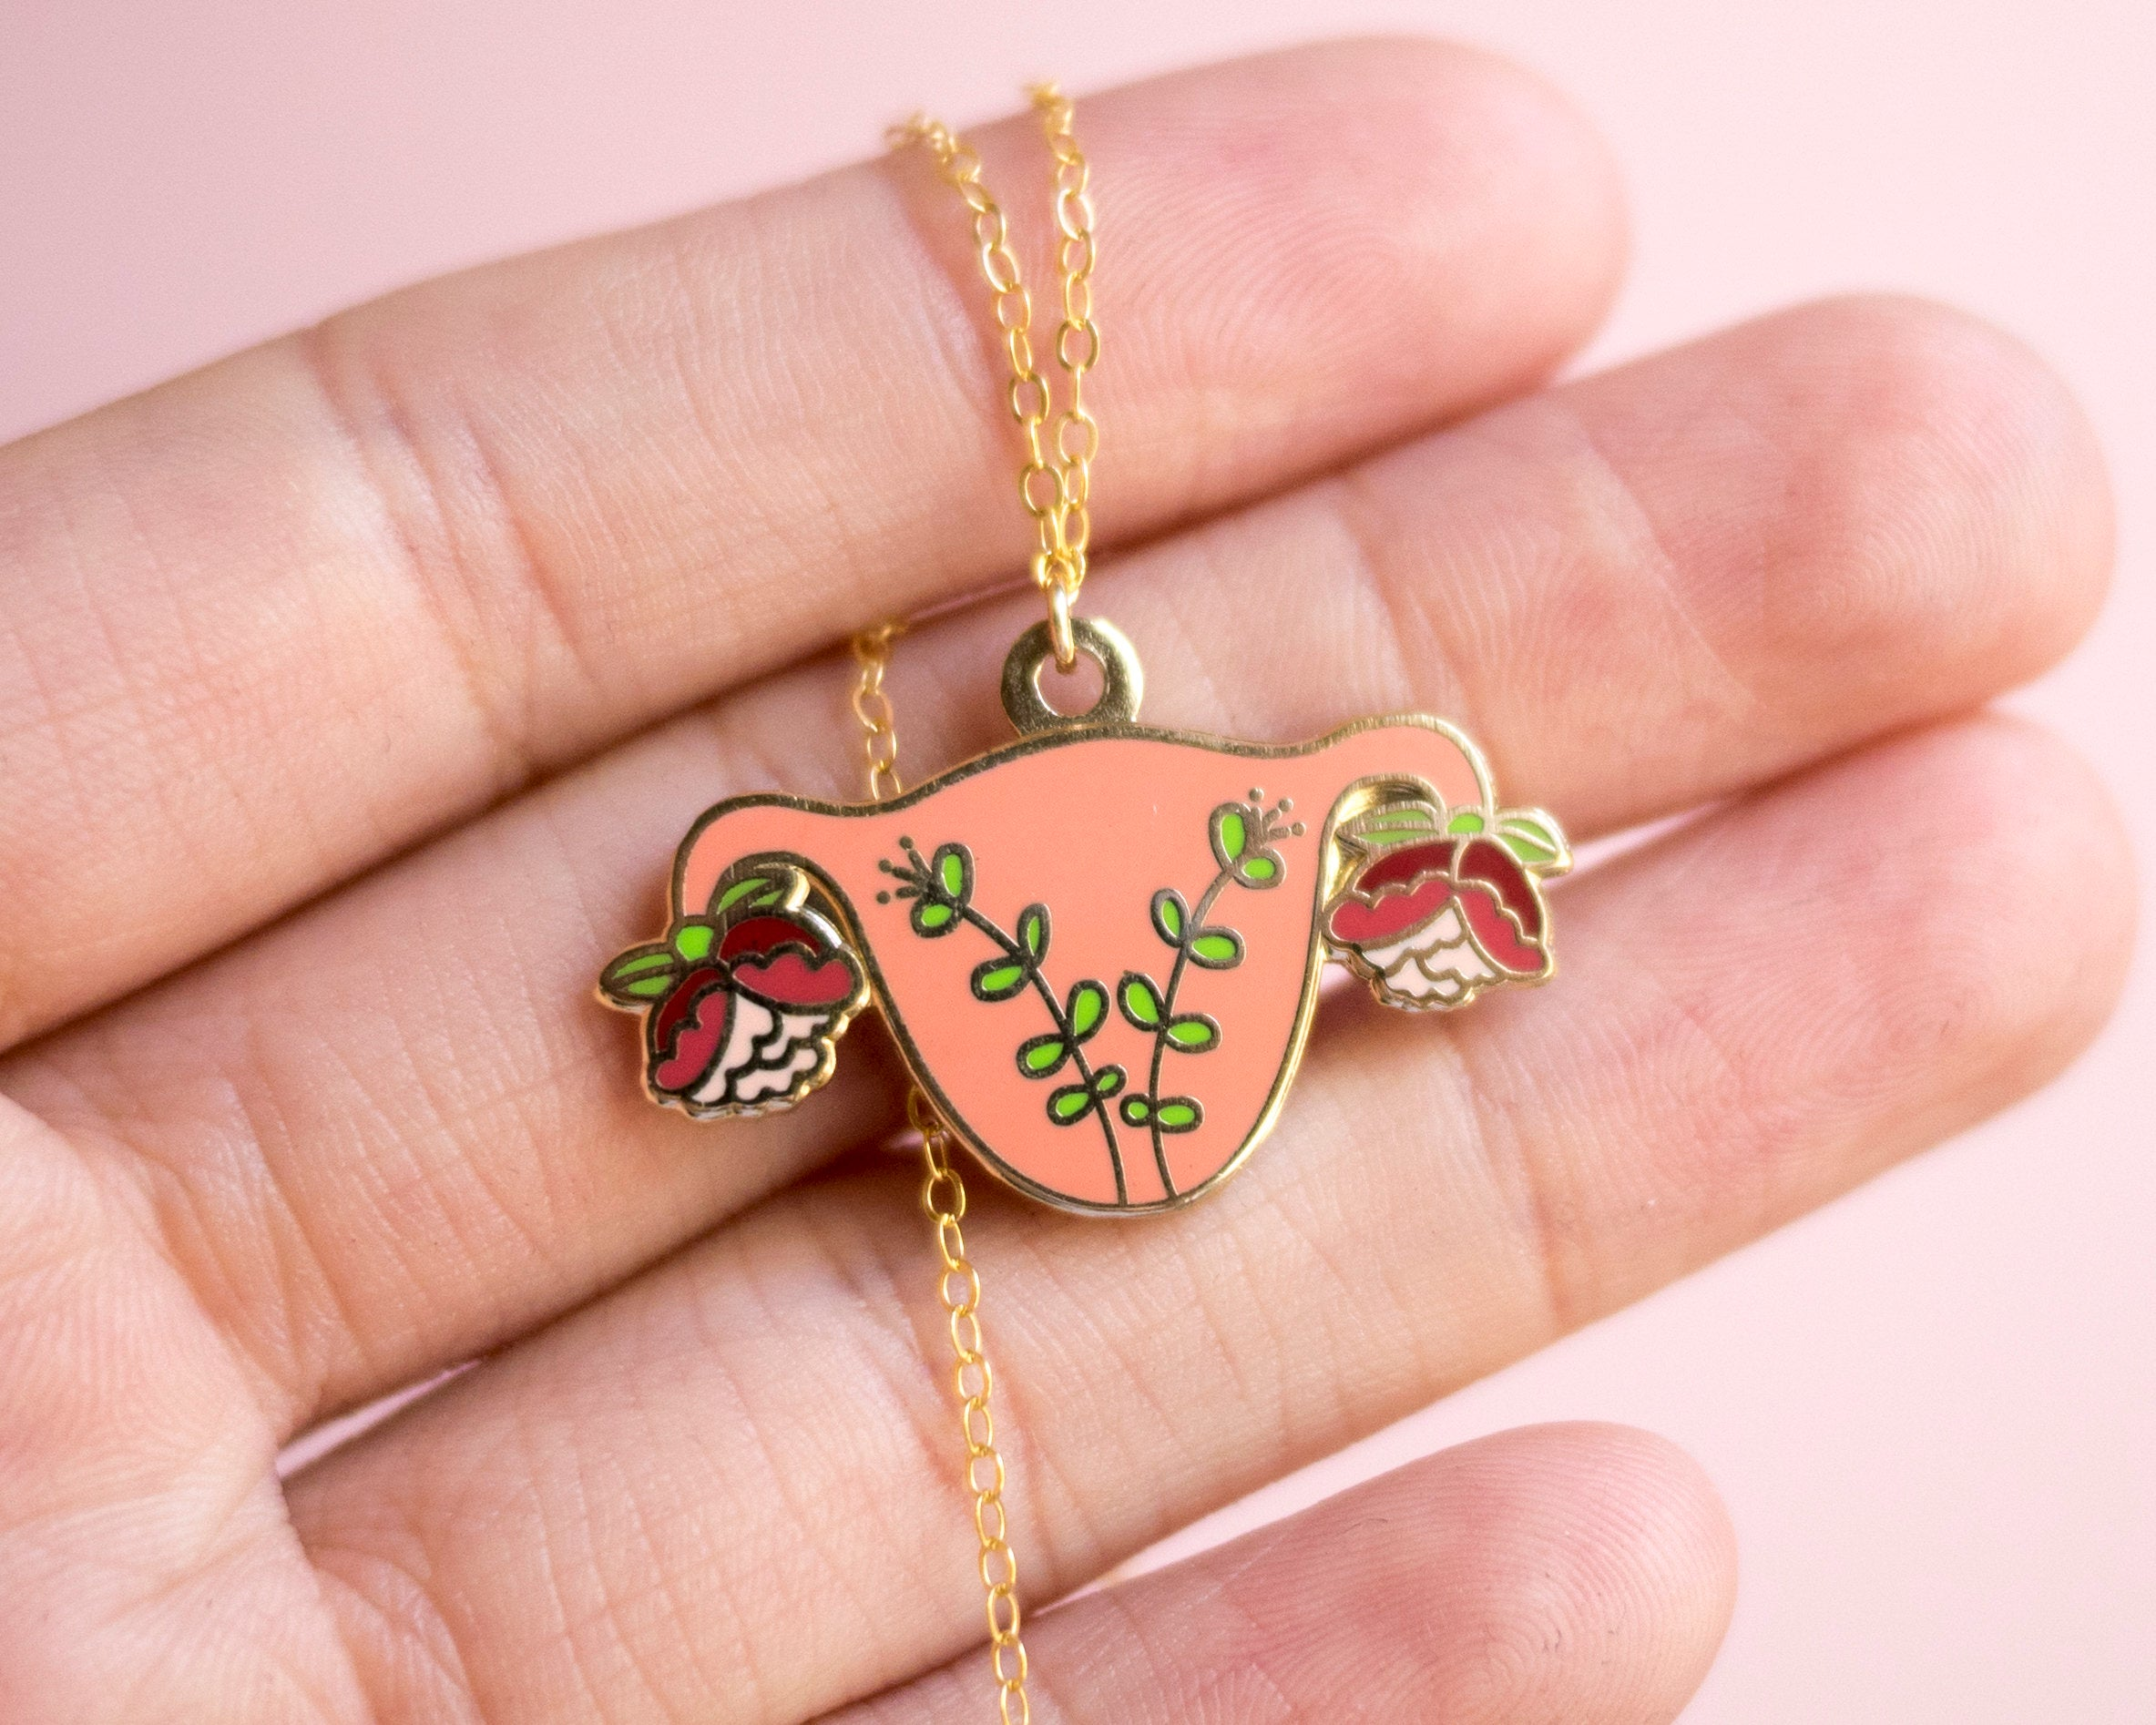 Uterus Charm Necklace Feminist Enamel Jewelry- Gold Blooming Uterus Feminist Gift Cuterus Women' Rights Reproductive Rights Girl Power Art